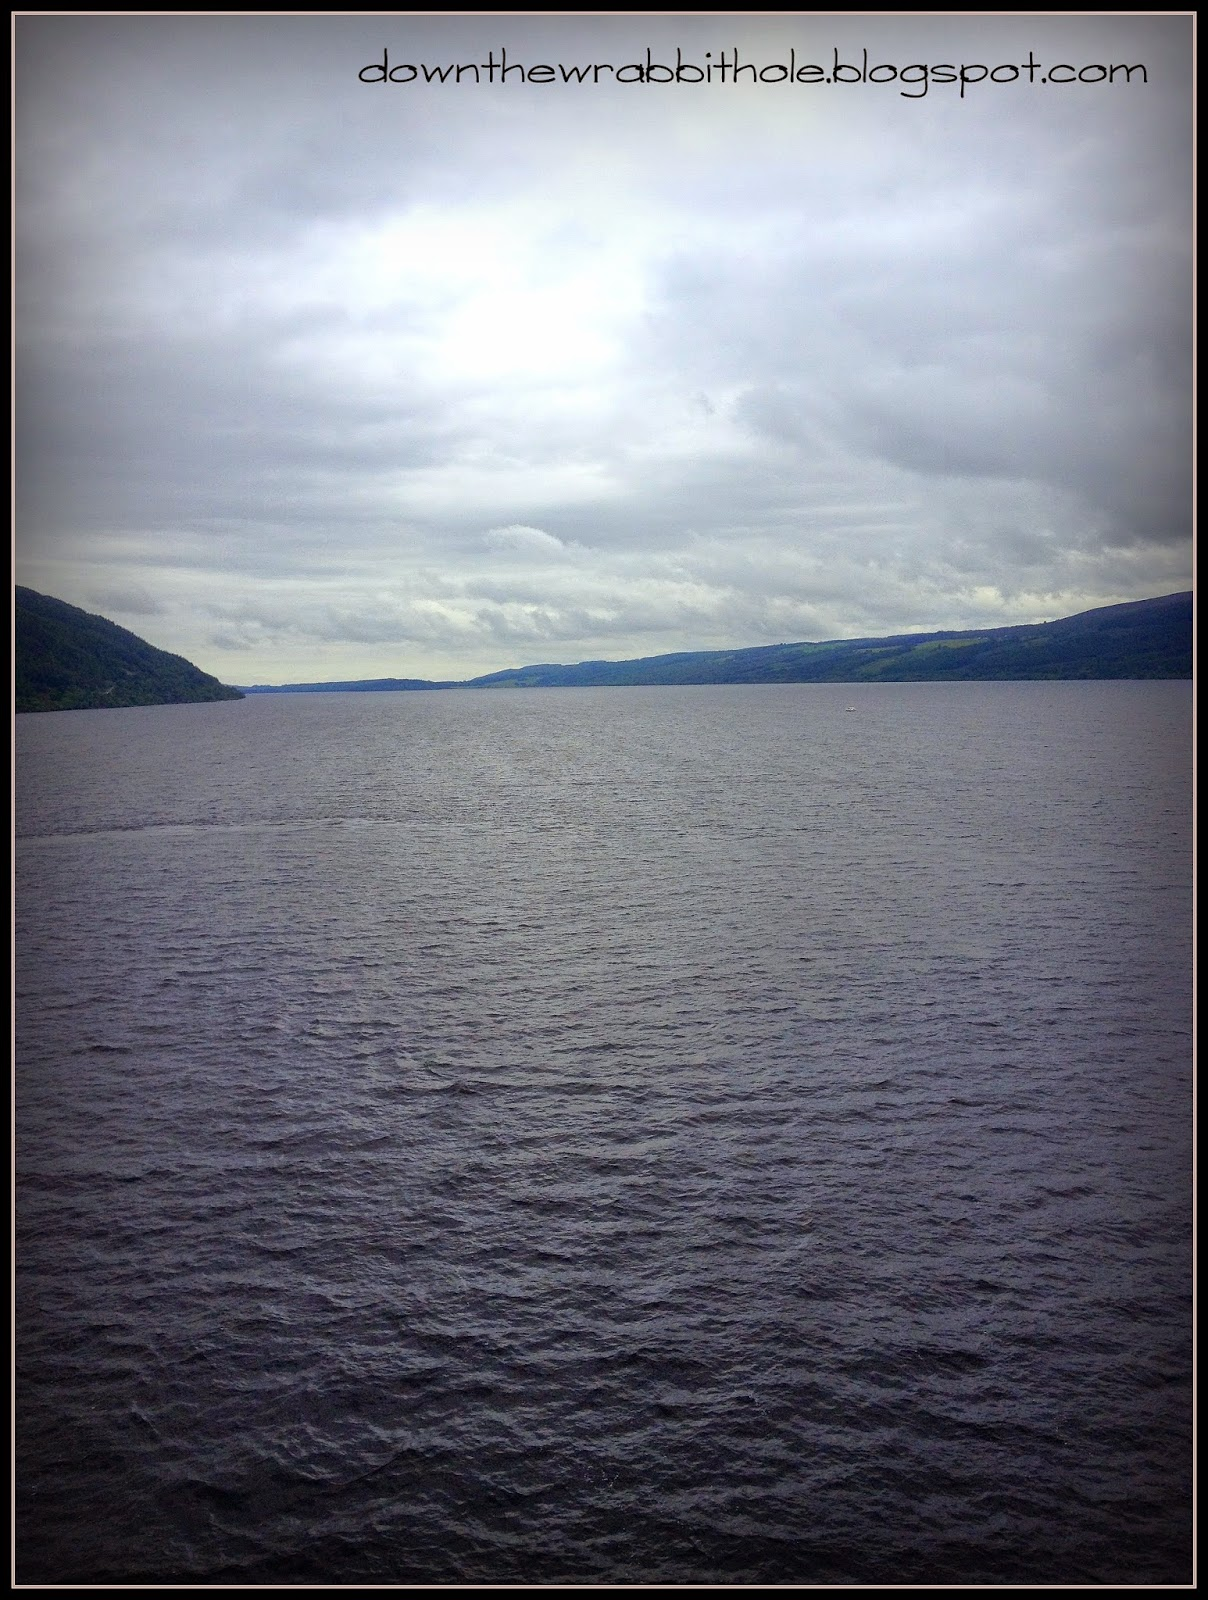 waters of Loch Ness, gloomy day at Loch Ness